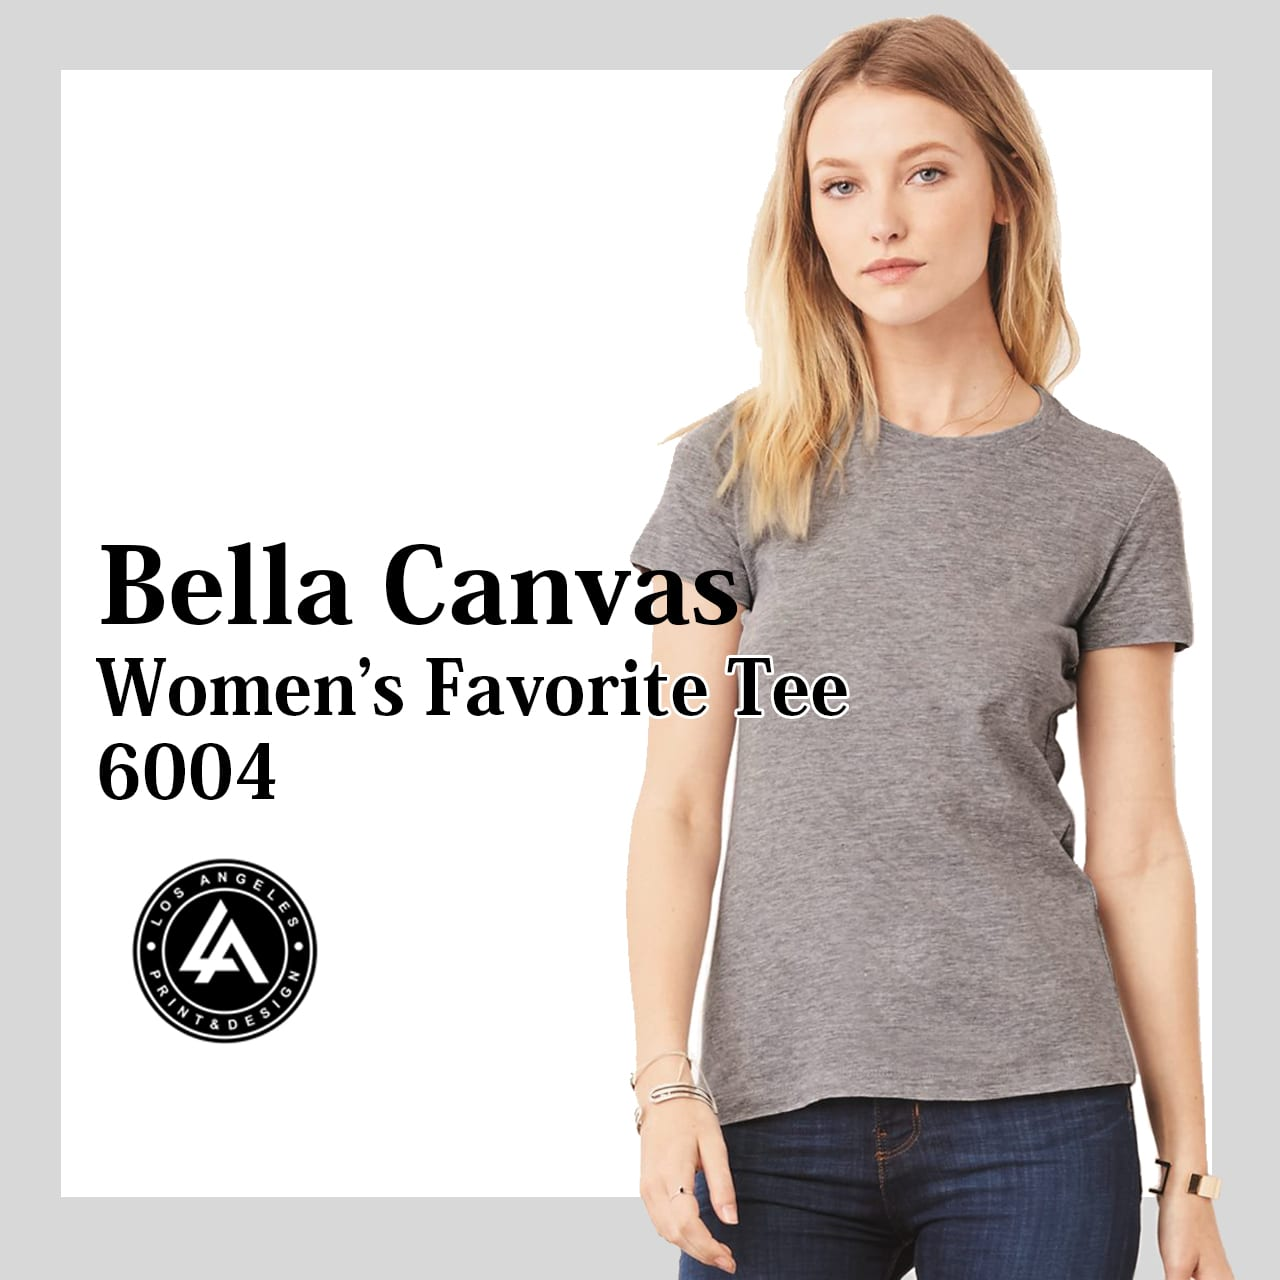 8171733e The sister to the Bella Canvas 3001, this premium women's tee shirt known  as the Bella Canvas 6004 is super soft and fashionable.